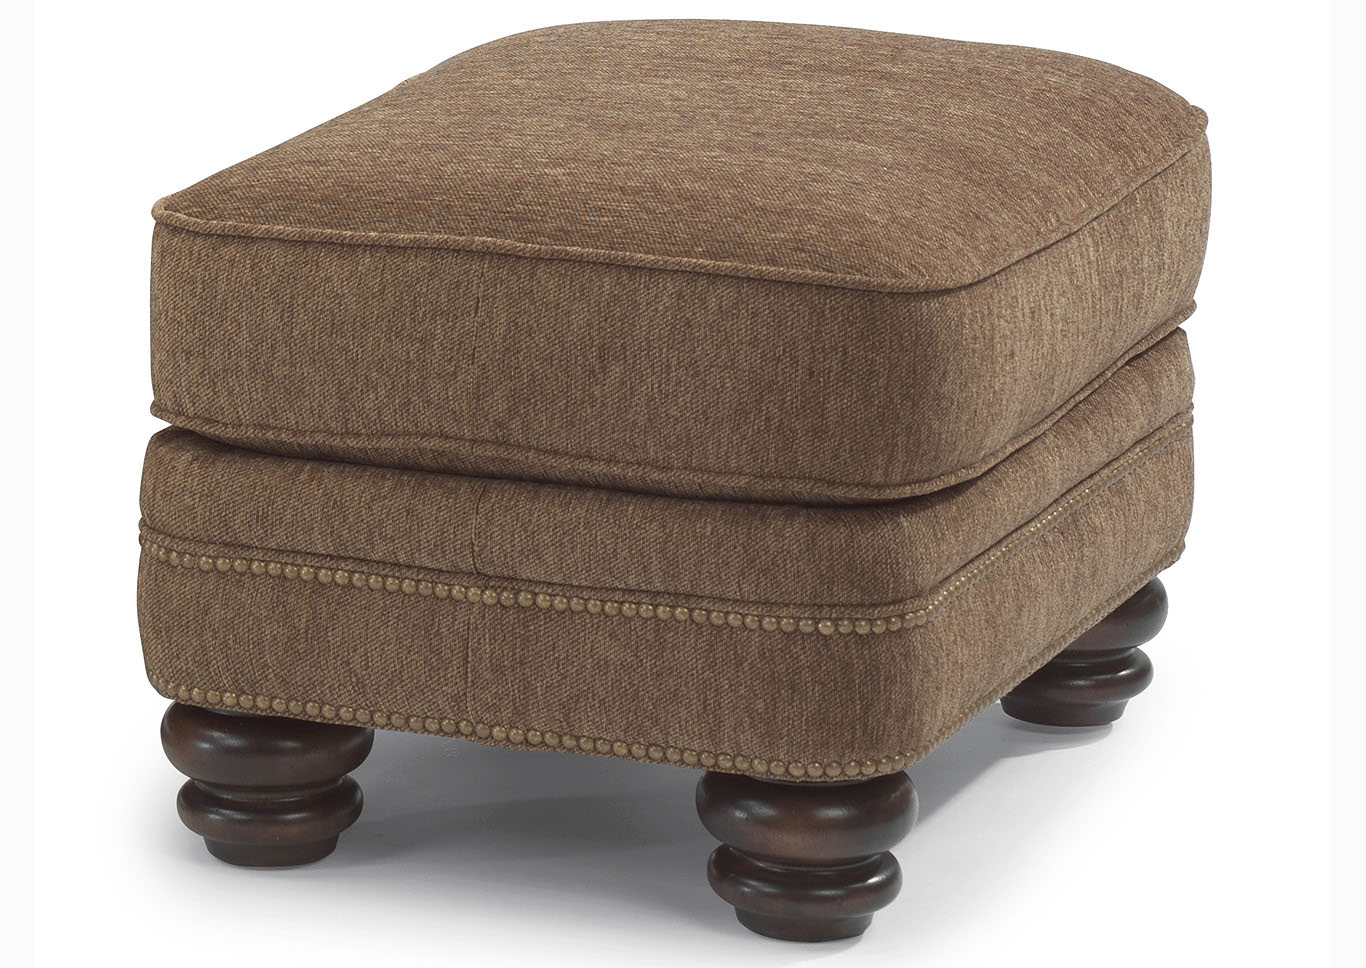 Fabulous V Watts Furniture Bay Bridge Fabric Ottoman W Nailhead Trim Evergreenethics Interior Chair Design Evergreenethicsorg